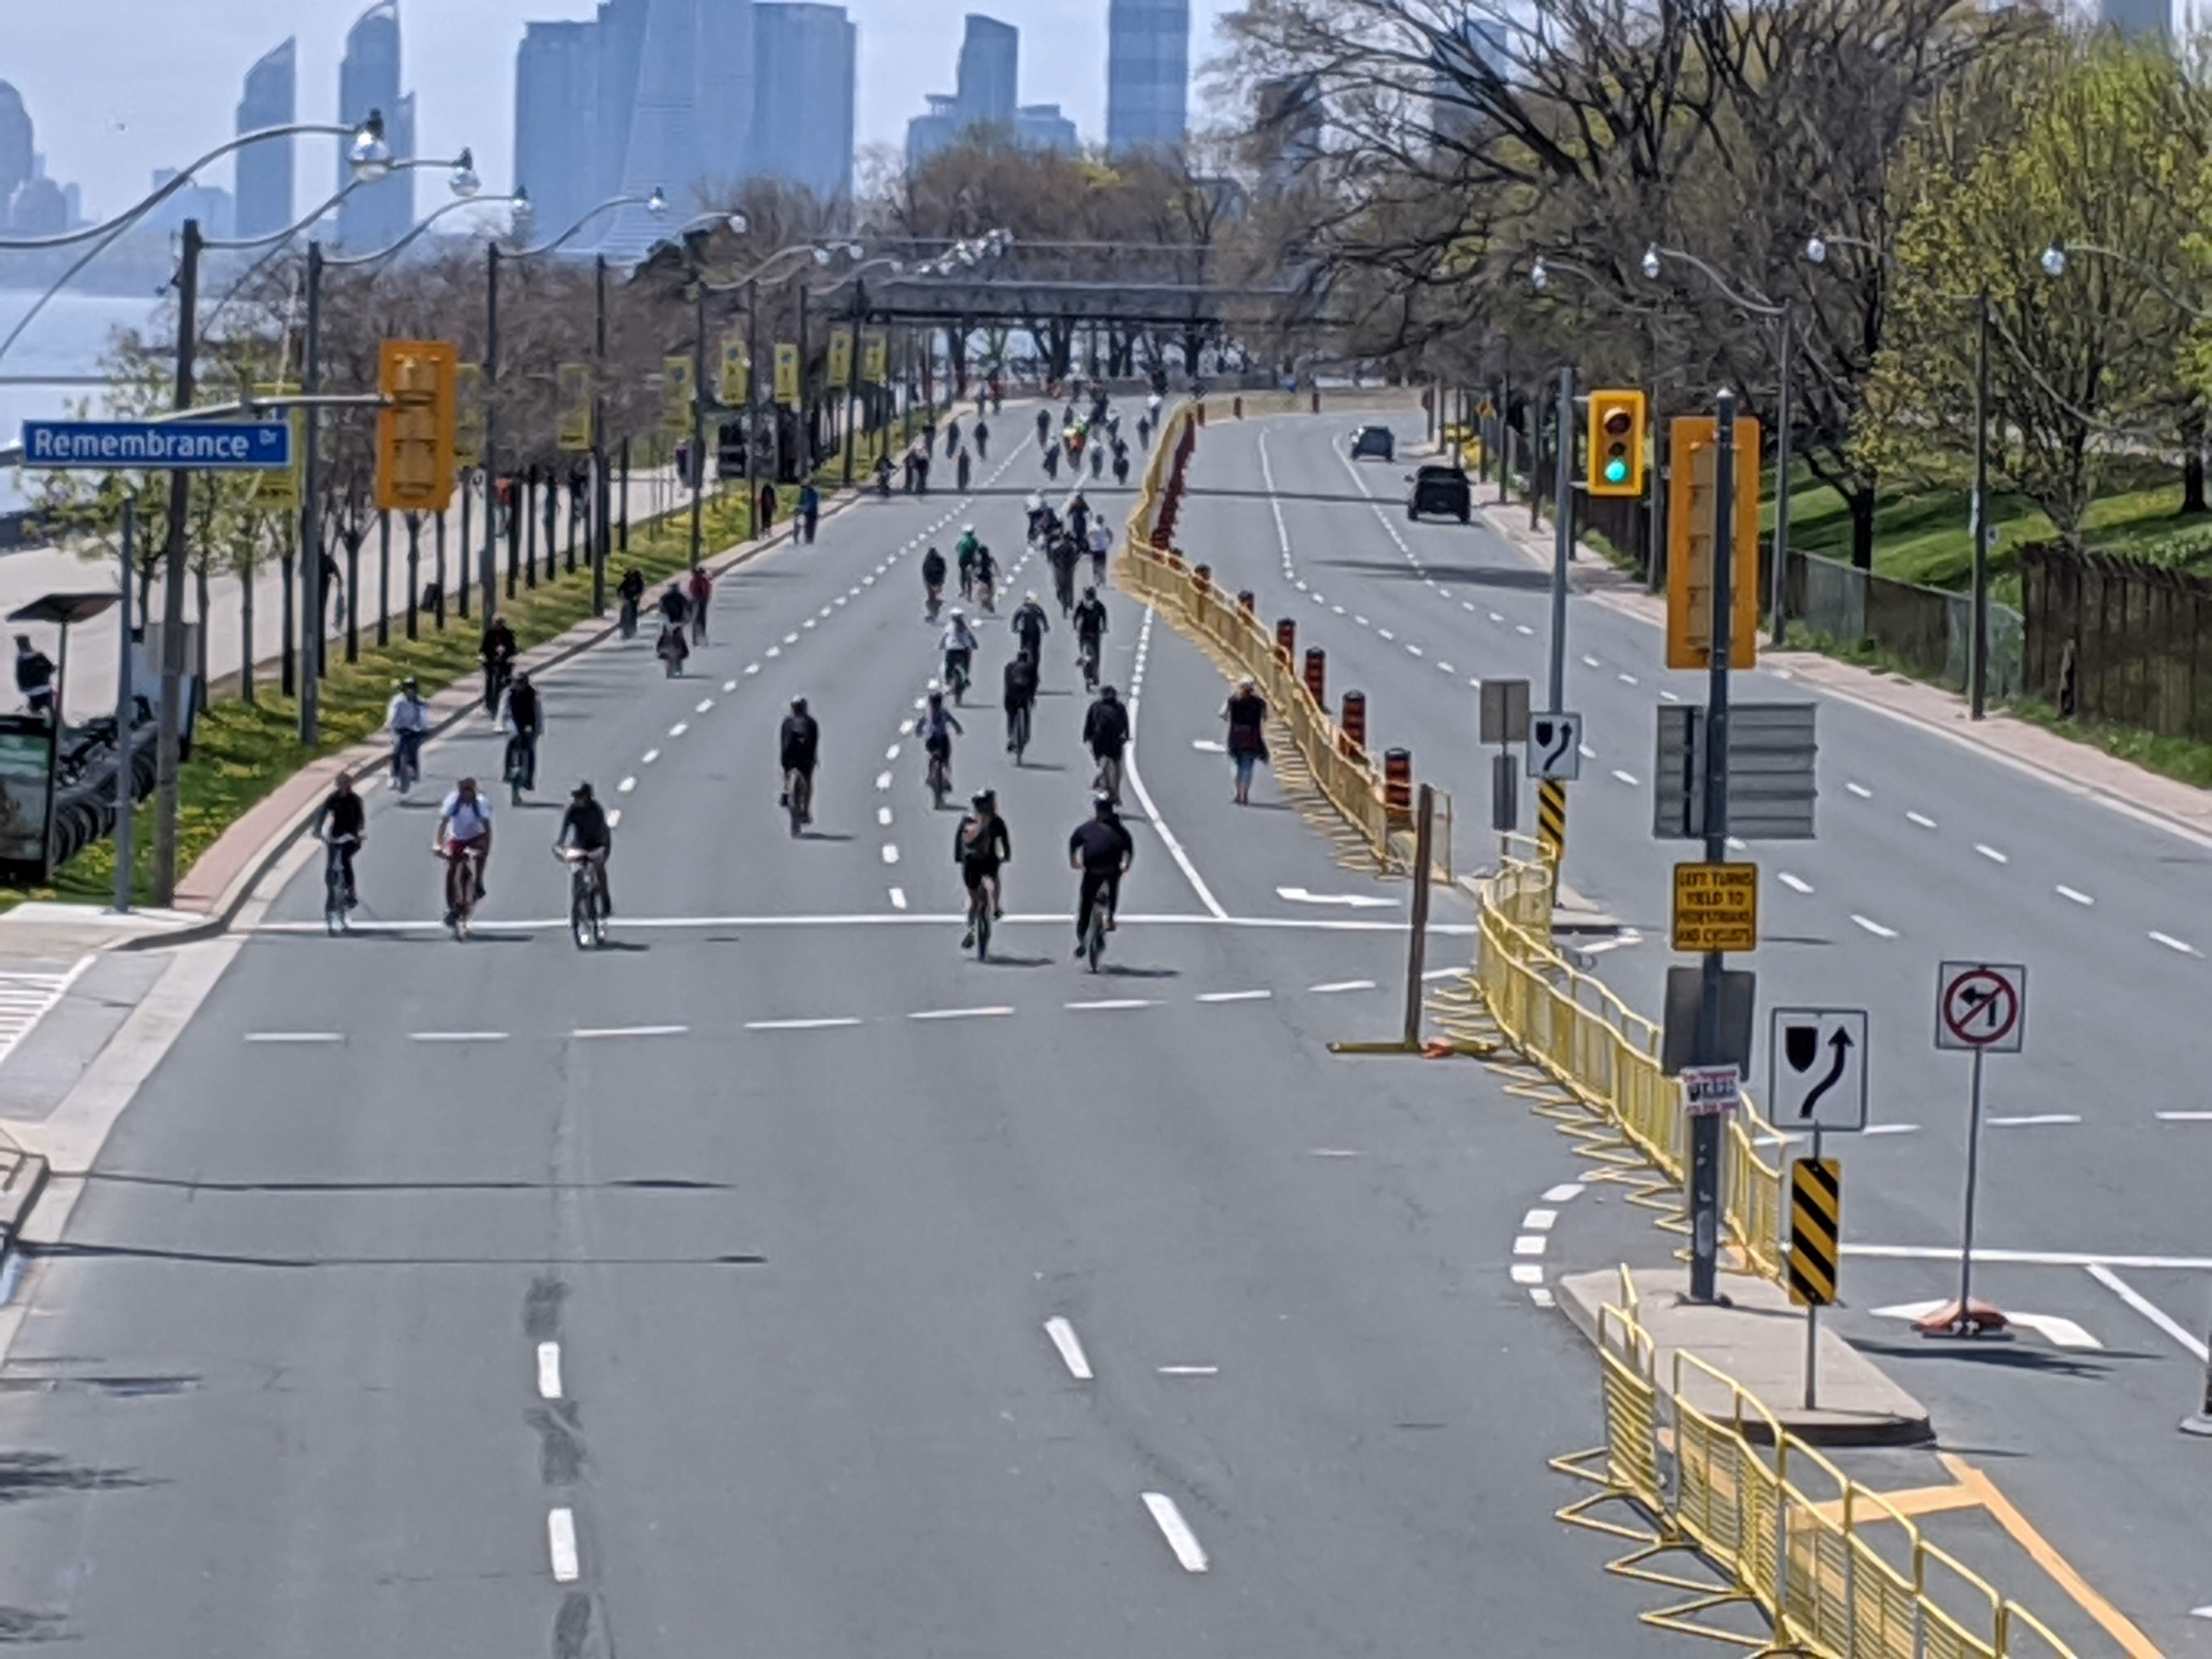 Wide street with many people walking, biking and running on it